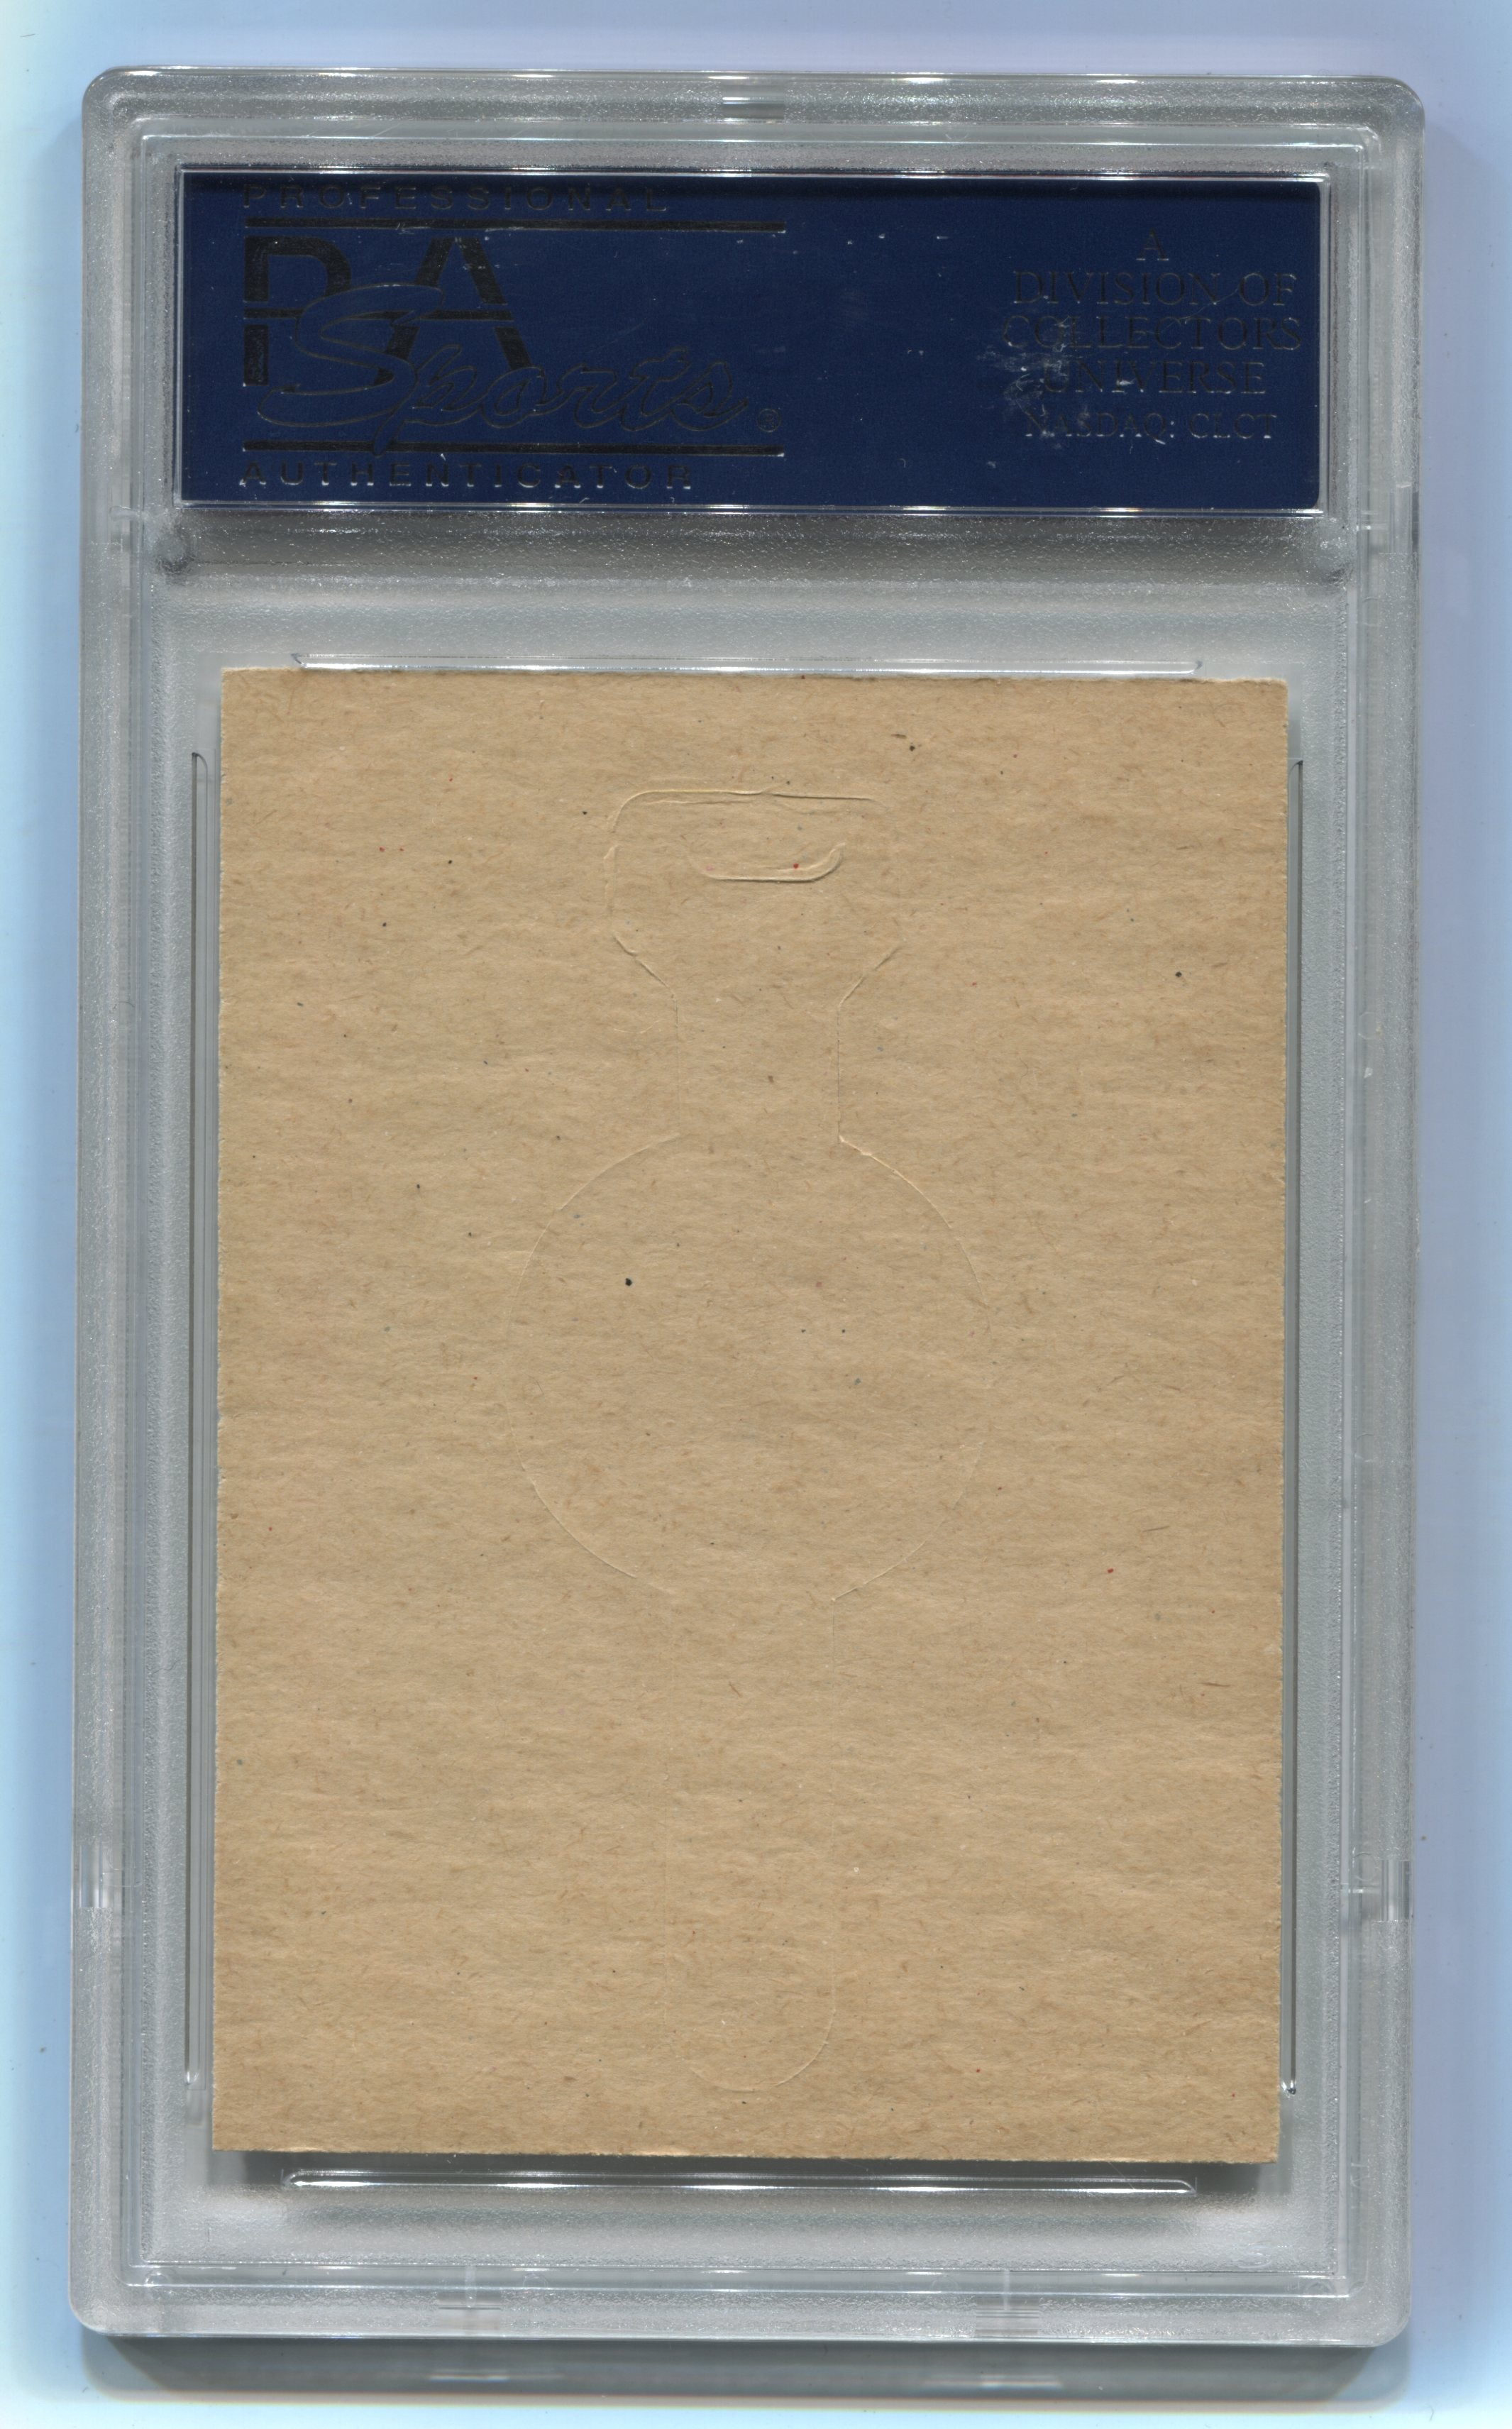 1973-74 O-Pee-Chee Rings #4 NHL Logo PSA 9 | Eastridge Sports Cards